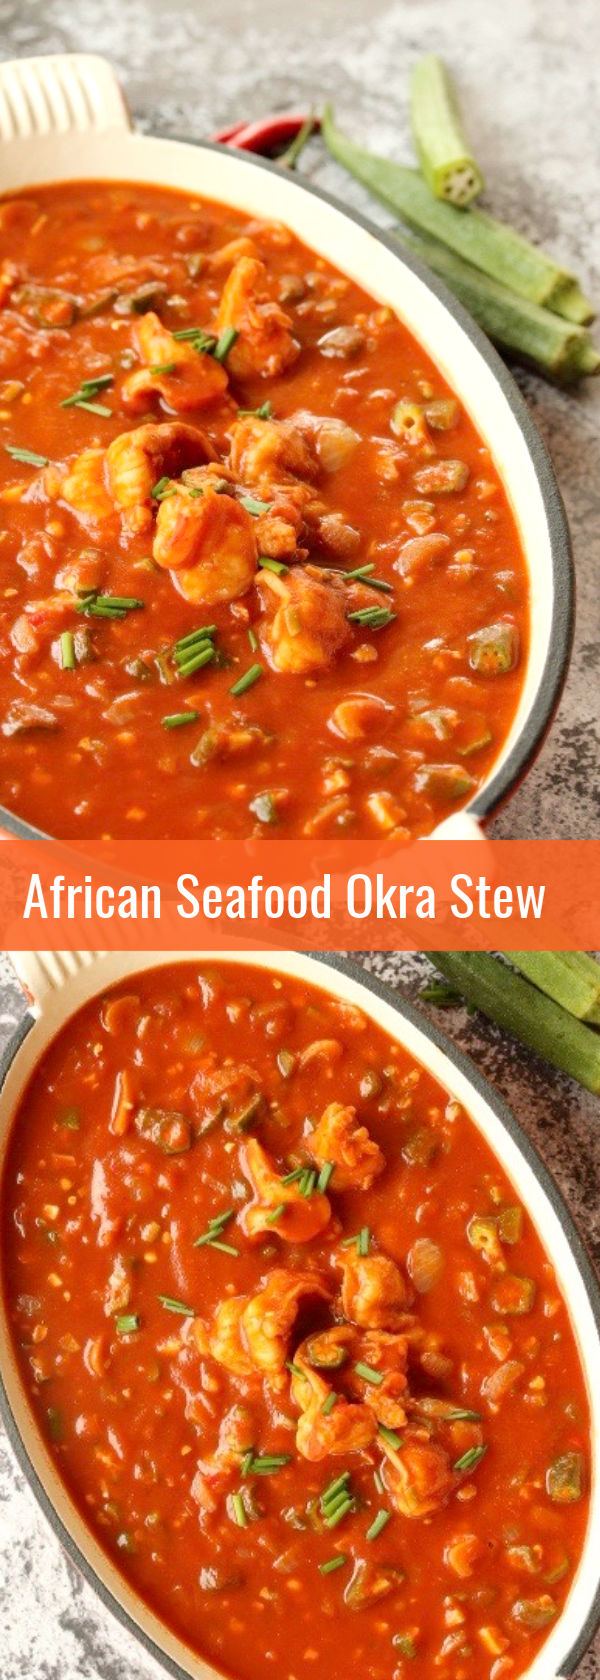 african_seafood_okra_stew